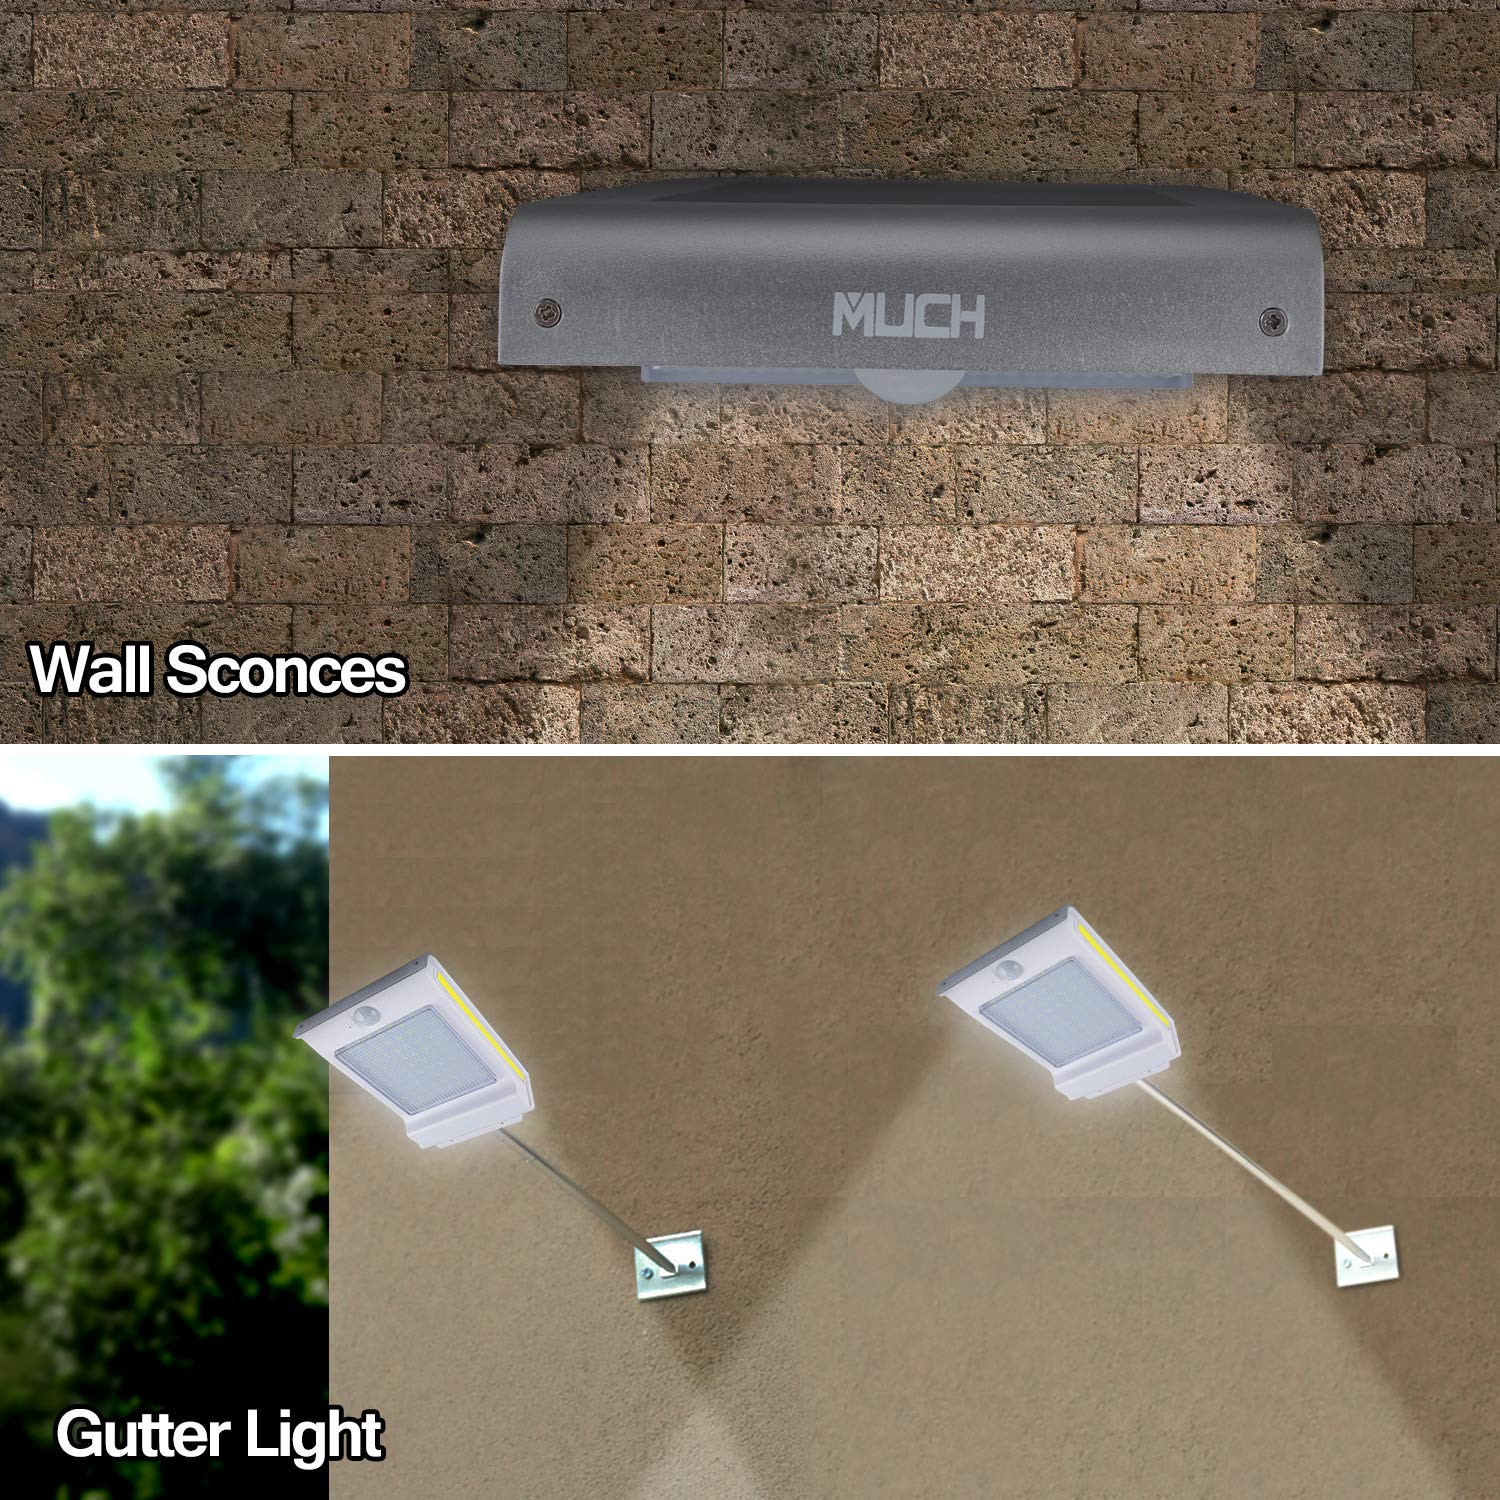 Black MUCH Gutter Solar Lights 72 LED PIR Motion Sensor Lamp Security Lighting Wall Sconces Solar Powered Motion Activated Wireless Waterproof Auto On//Off Outdoors for Patio Yard Garden Garage